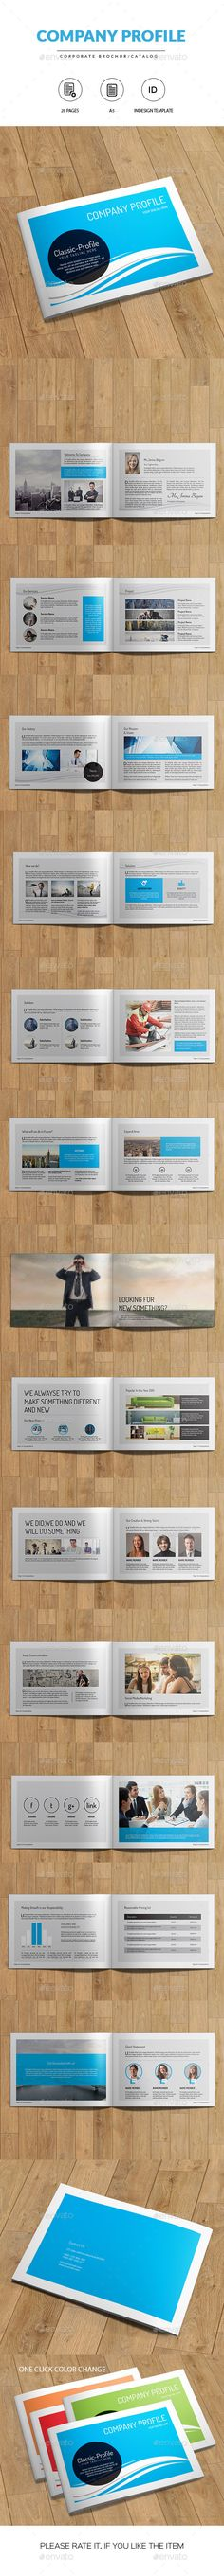 Easy to edit everything.Auto page numbering. Corporate Brochure, Business Brochure, Corporate Design, Brochure Design, Company Profile Template, Company Profile Design, Weekly Menu Template, Newsletter Templates, Menu Templates